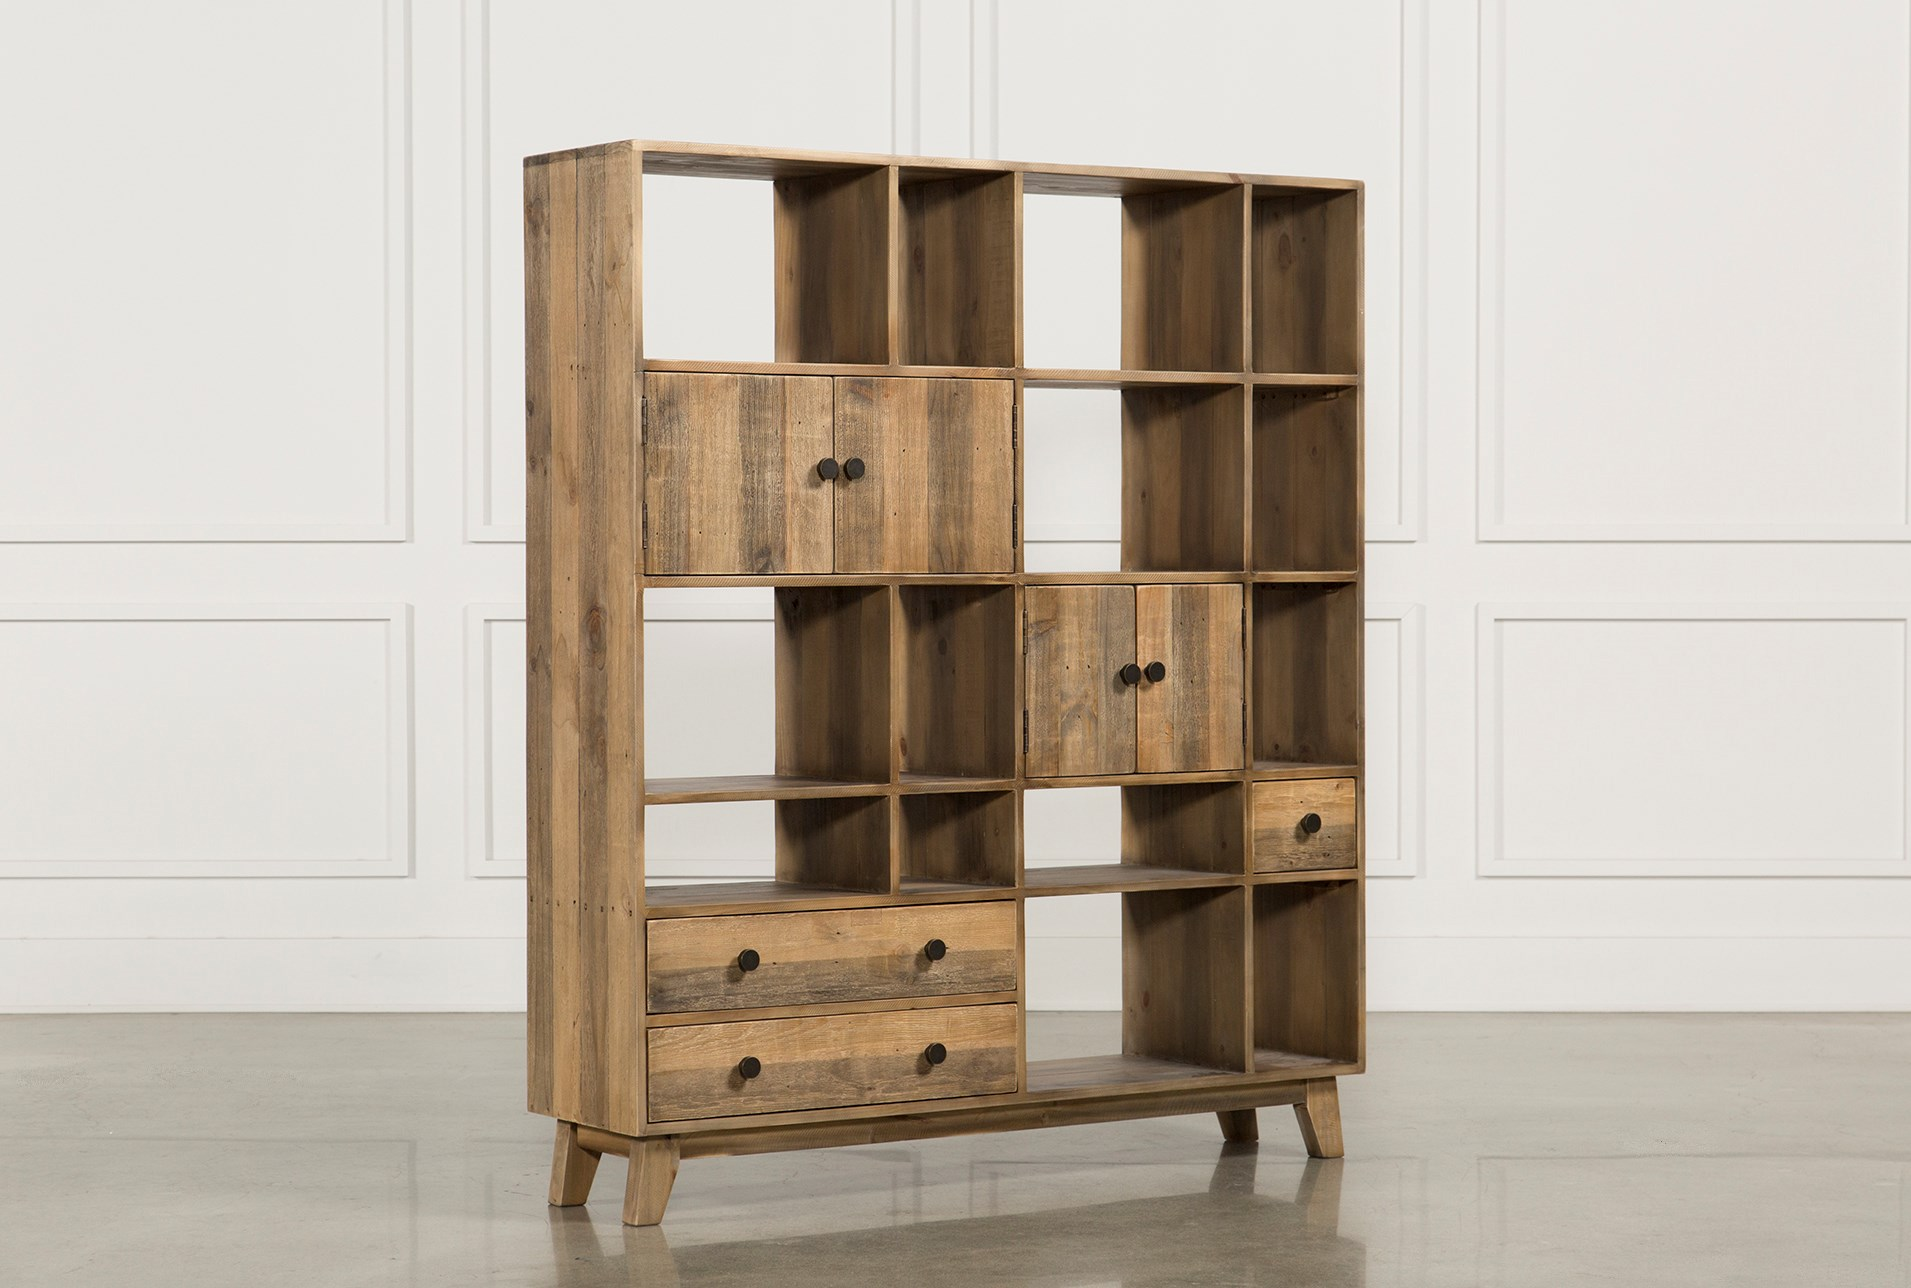 room french bookcases about frosted is an retrocomputinggeek and any just glass practical doors addition bookcase internal sliding in pocket to door a panel elegant com pin